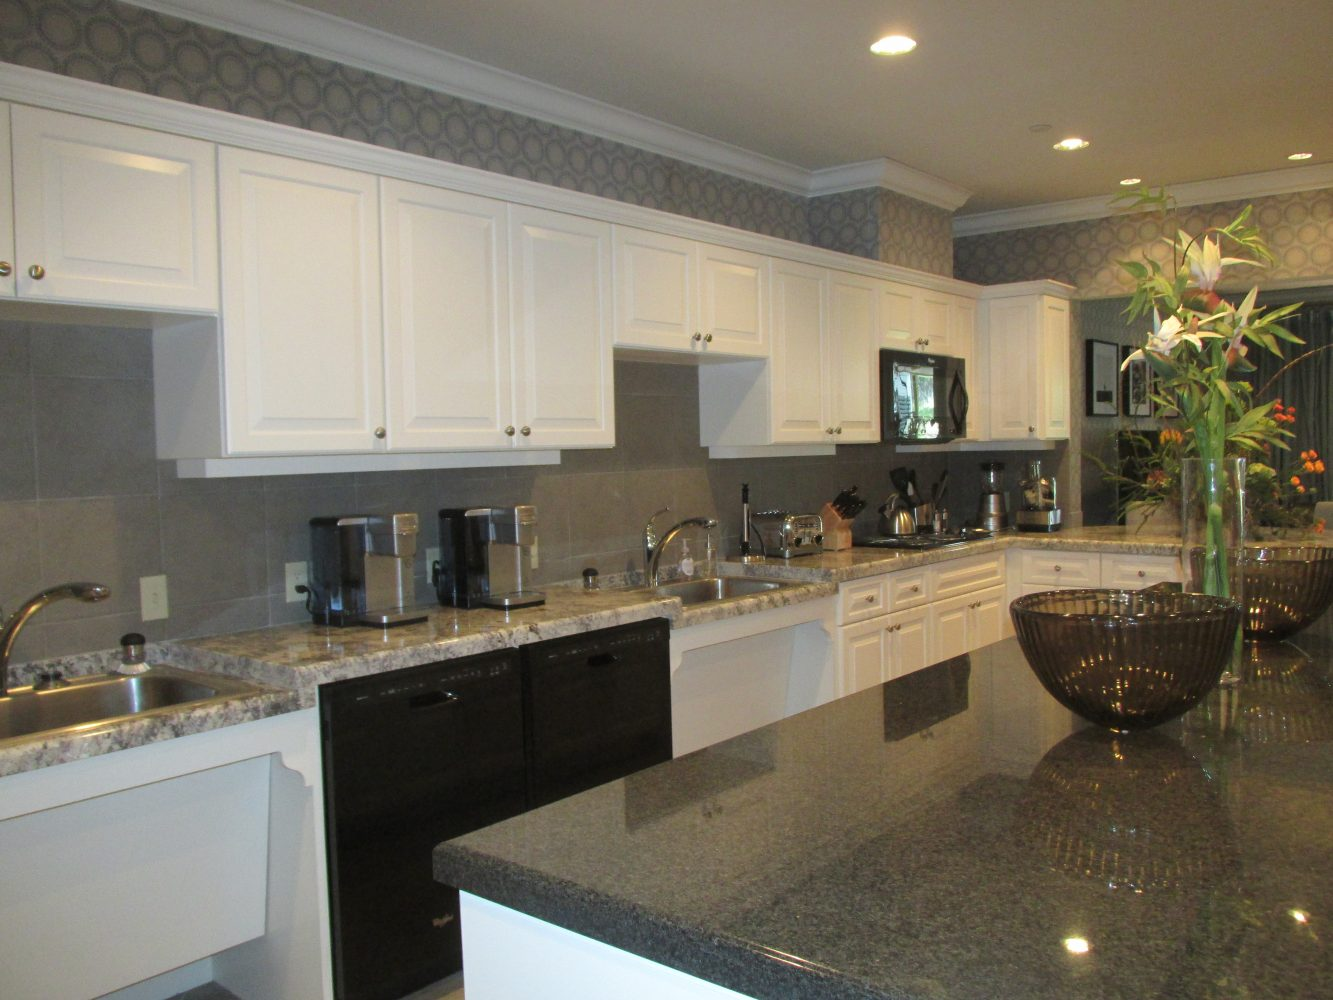 State-of-the-art  community kitchen the families will share.